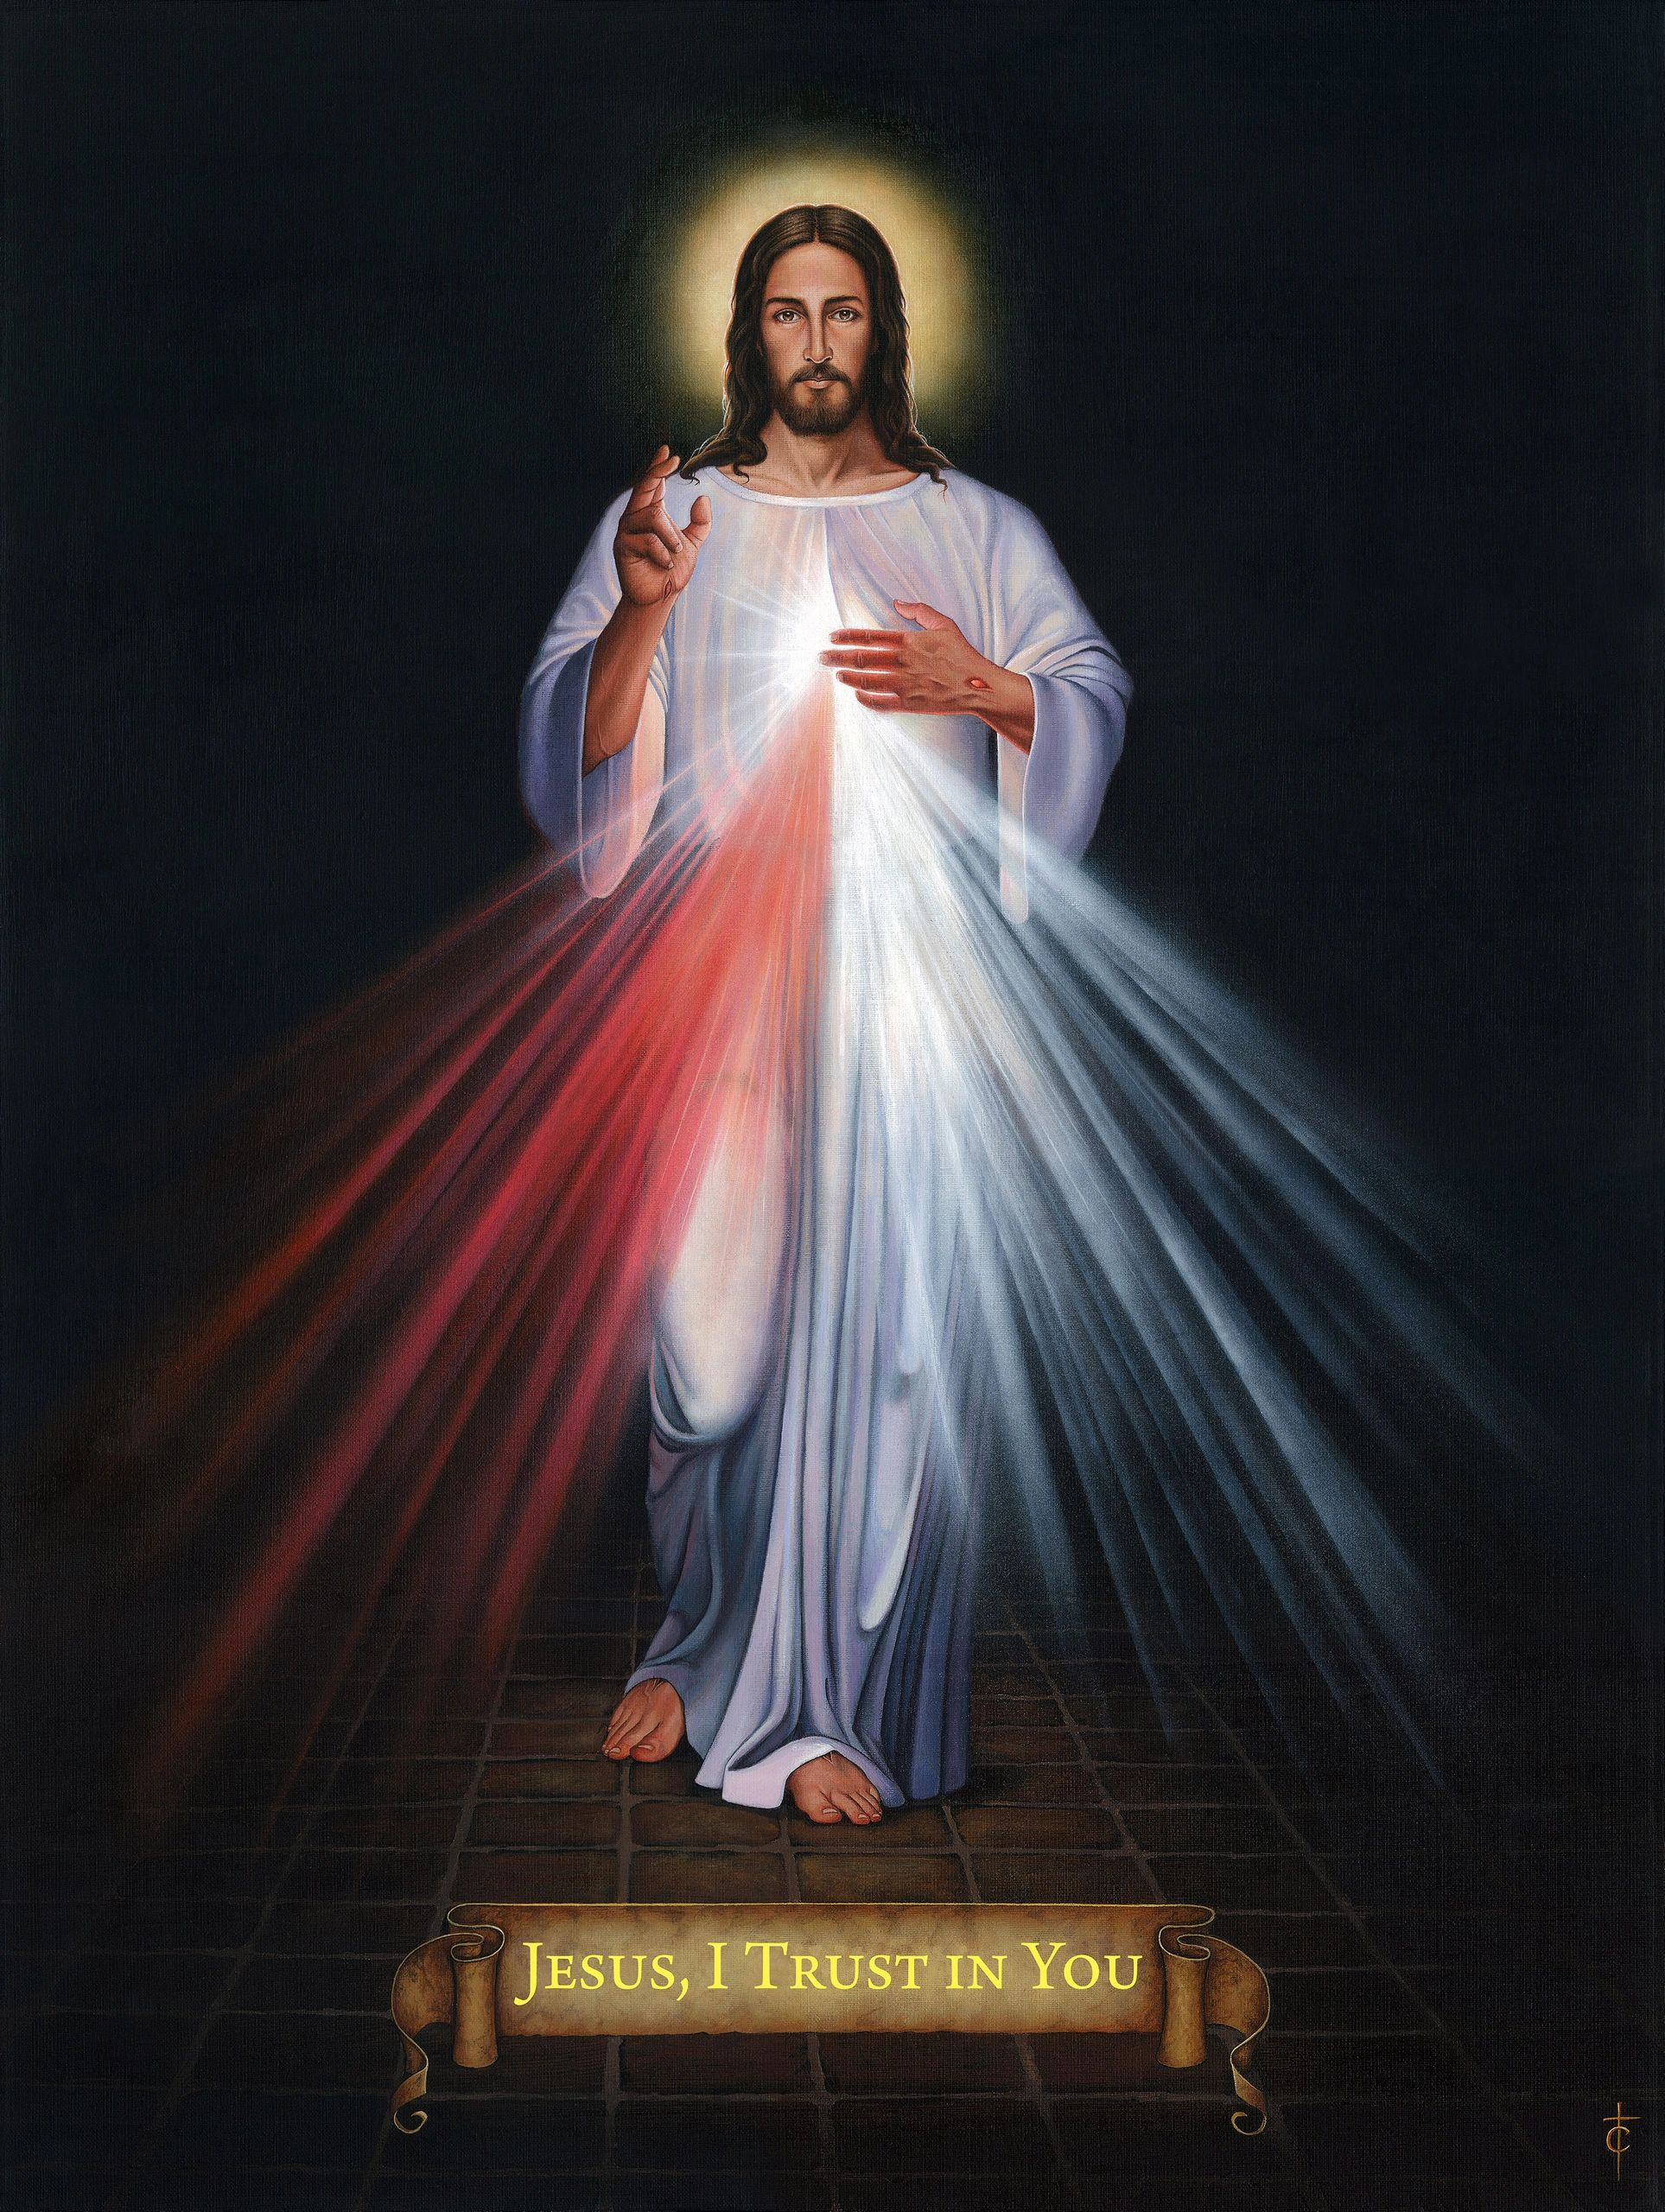 Divine Mercy painting by Tommy Canning. Jesus I trust in you.